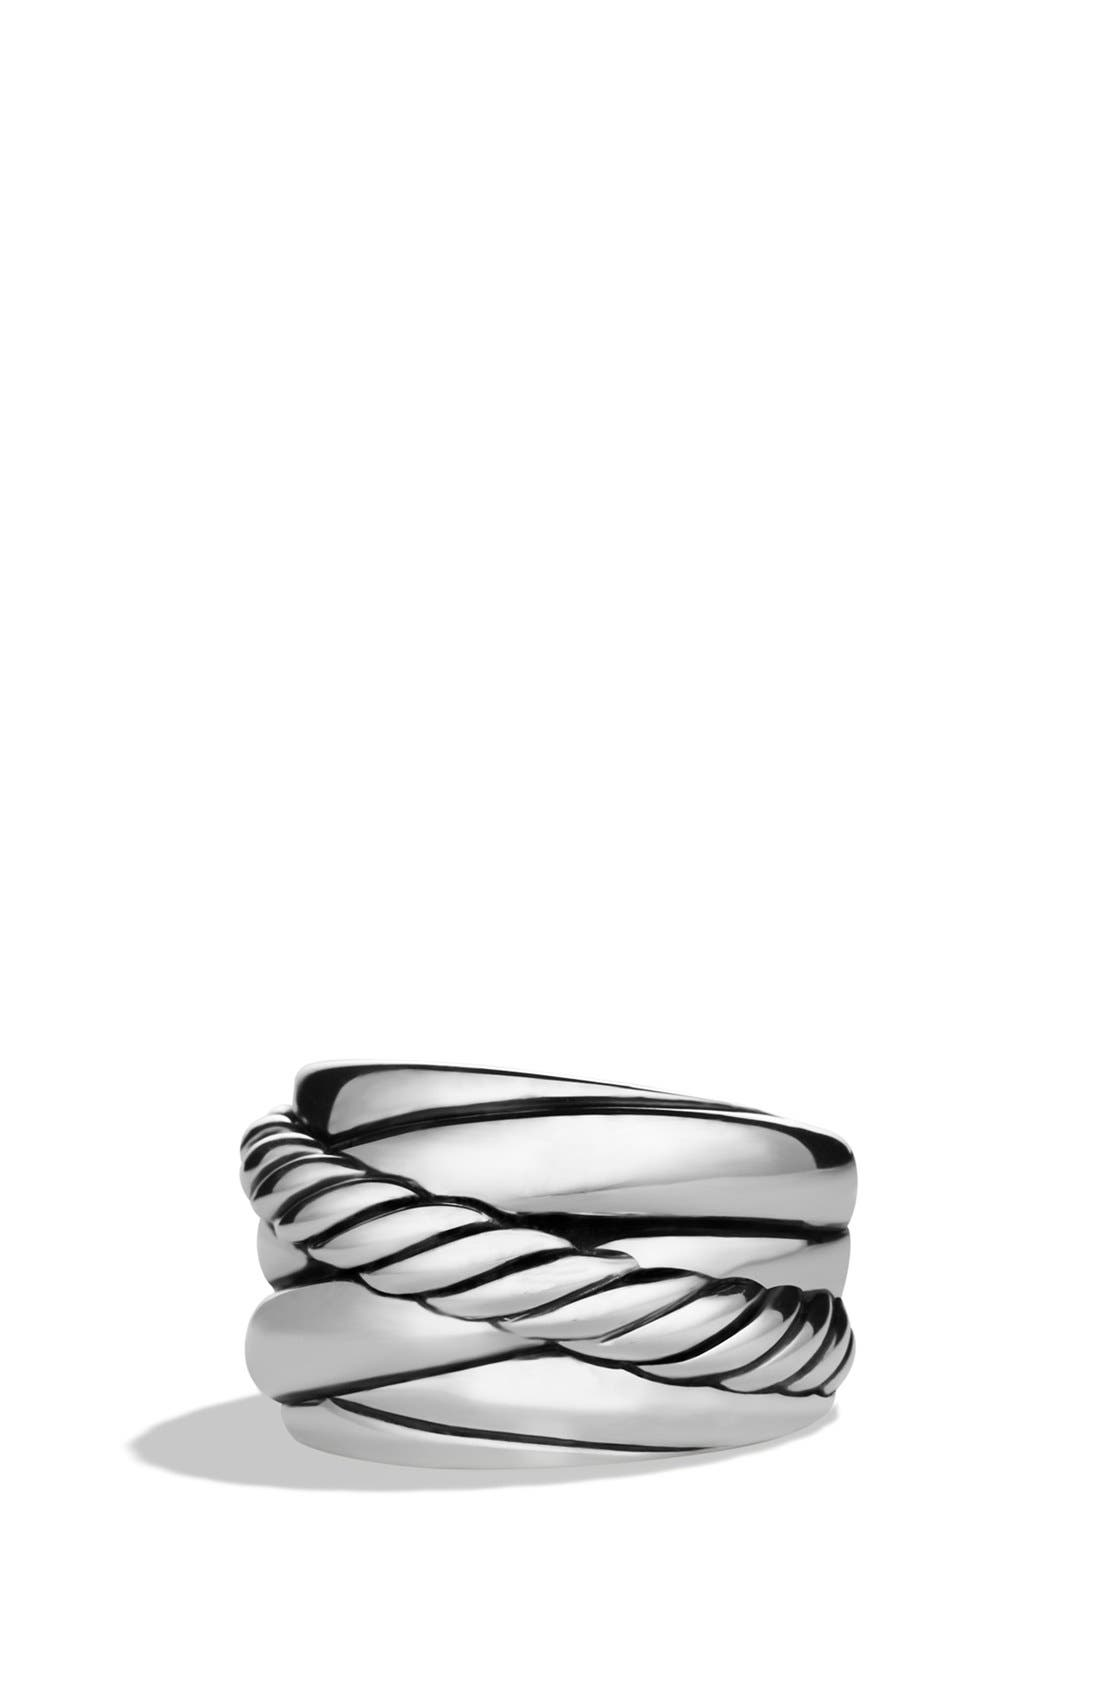 Main Image - David Yurman 'Crossover' Wide Ring